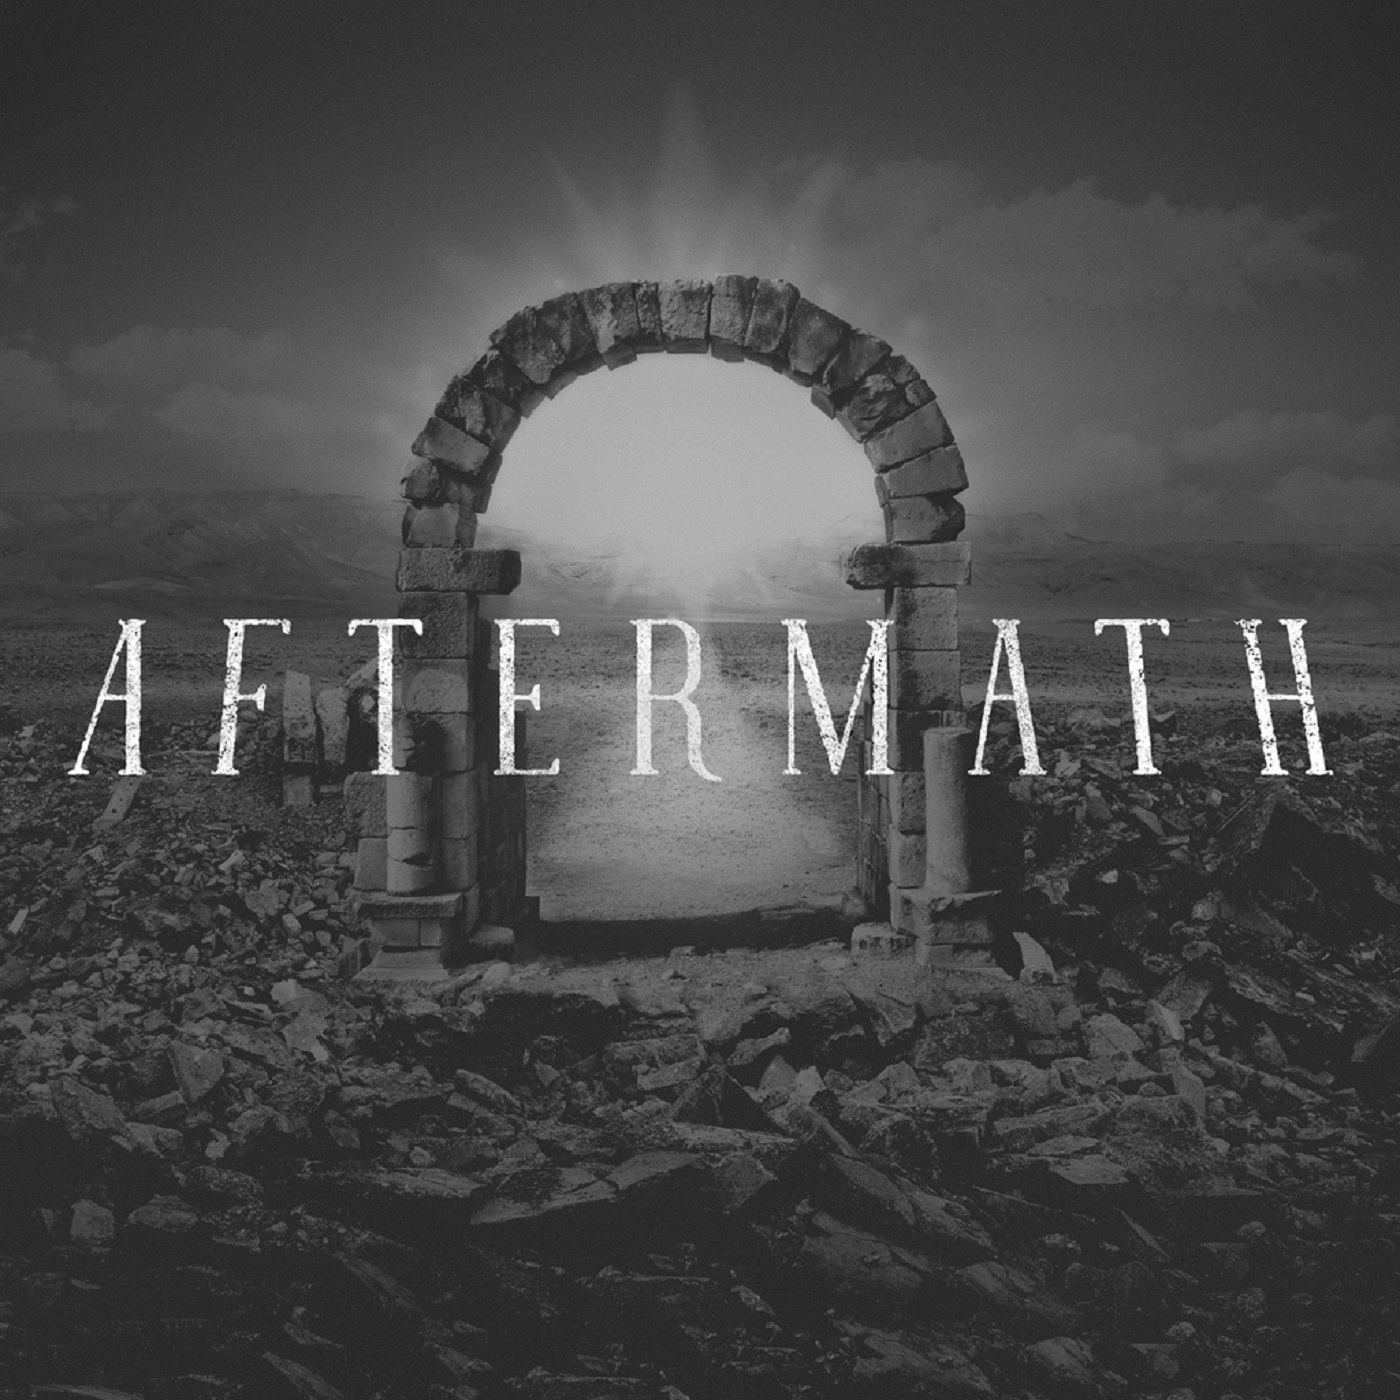 Aftermath: Not Difficult